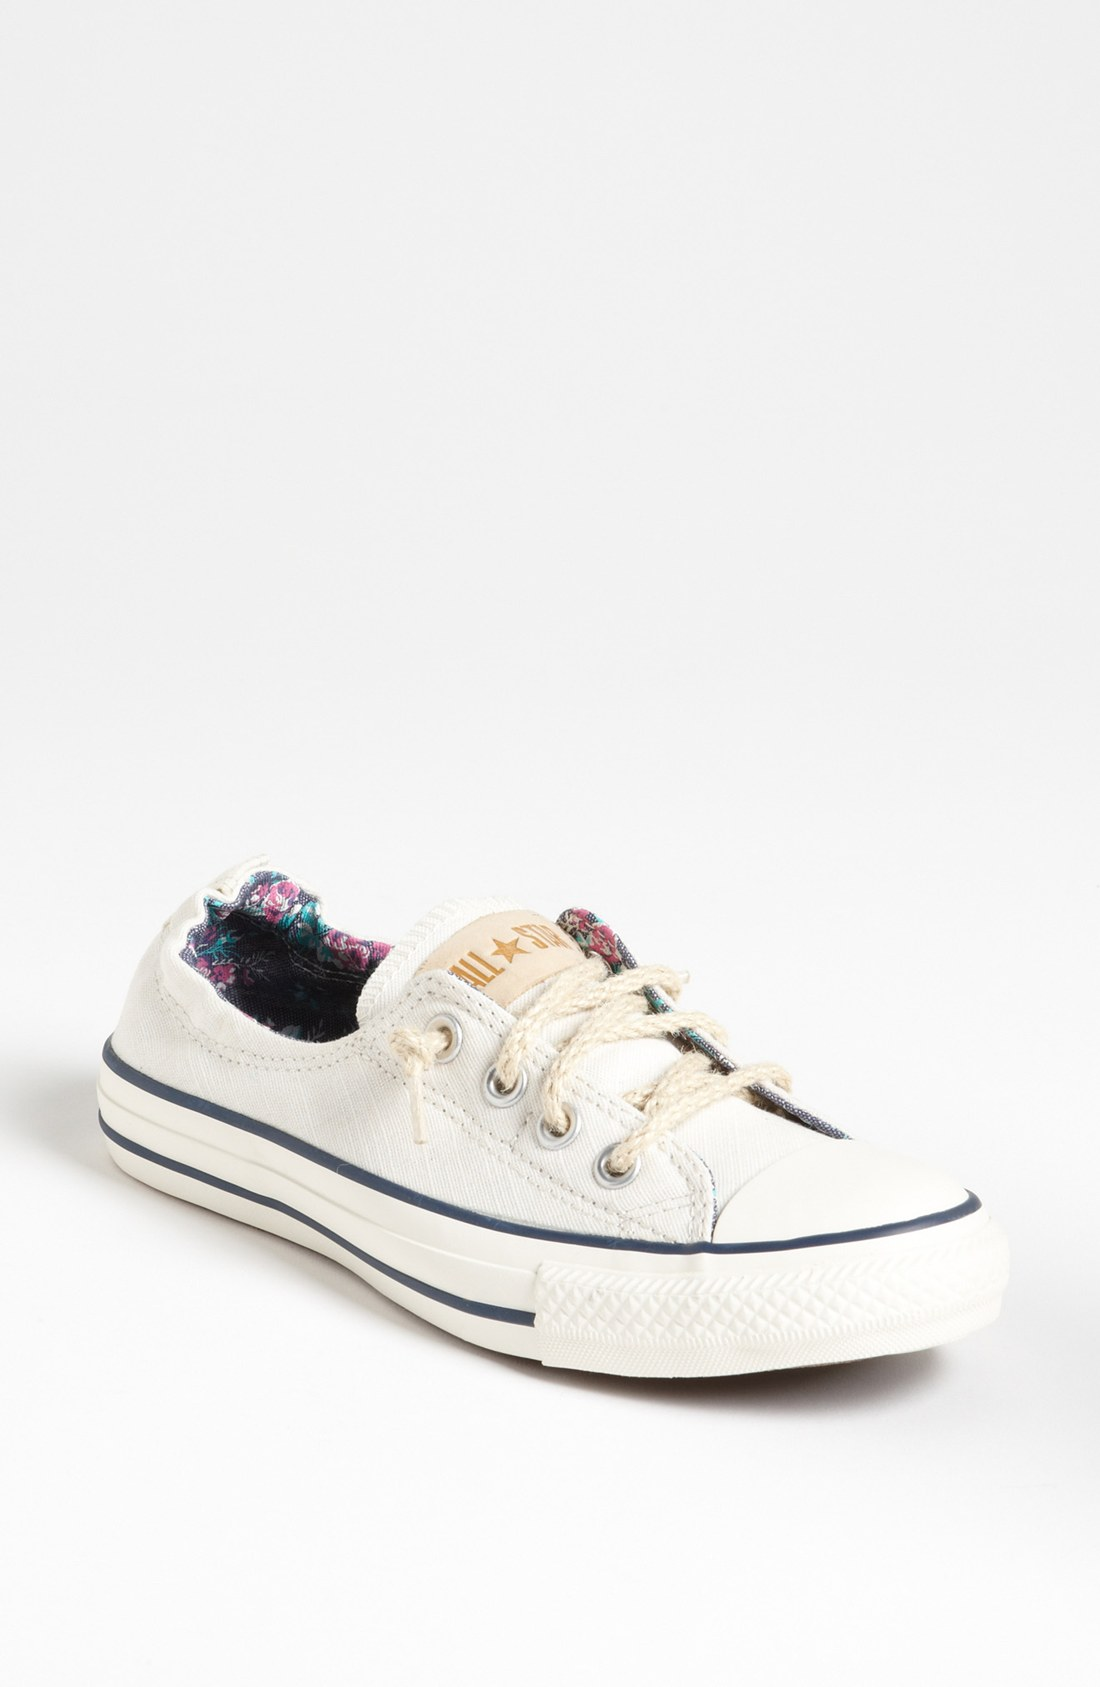 4ad4f7331766bf Converse Womens White Tennis Shoes offerzone.co.uk